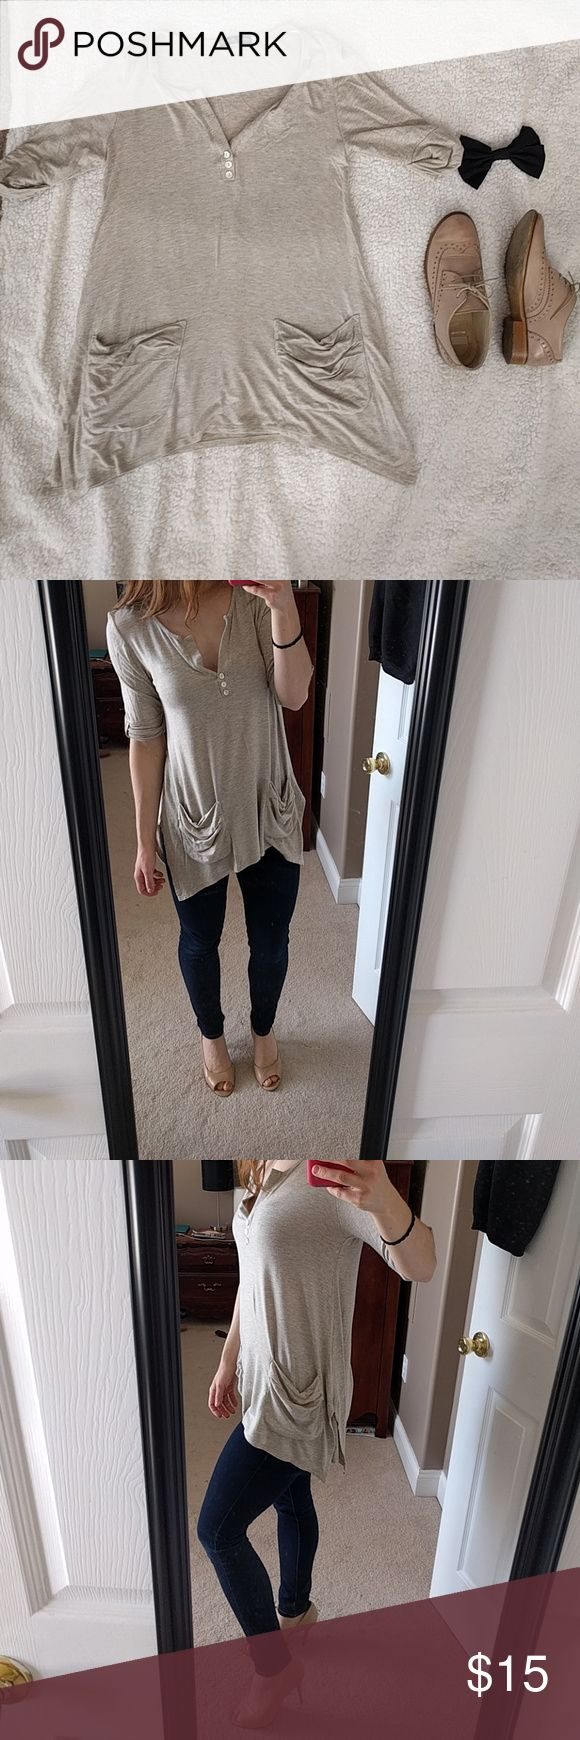 Nude slouchy tunic This top is an essential for your wardrobe! Goes with almost any style, and the slouchy pockets are the perfect touch. Worn only once or twice, and in perfect condition! The added slits and slight sharkbite-hem make it dressy enough to either dress up with some heels or down with some jeans and slip ons. Tops Tunics